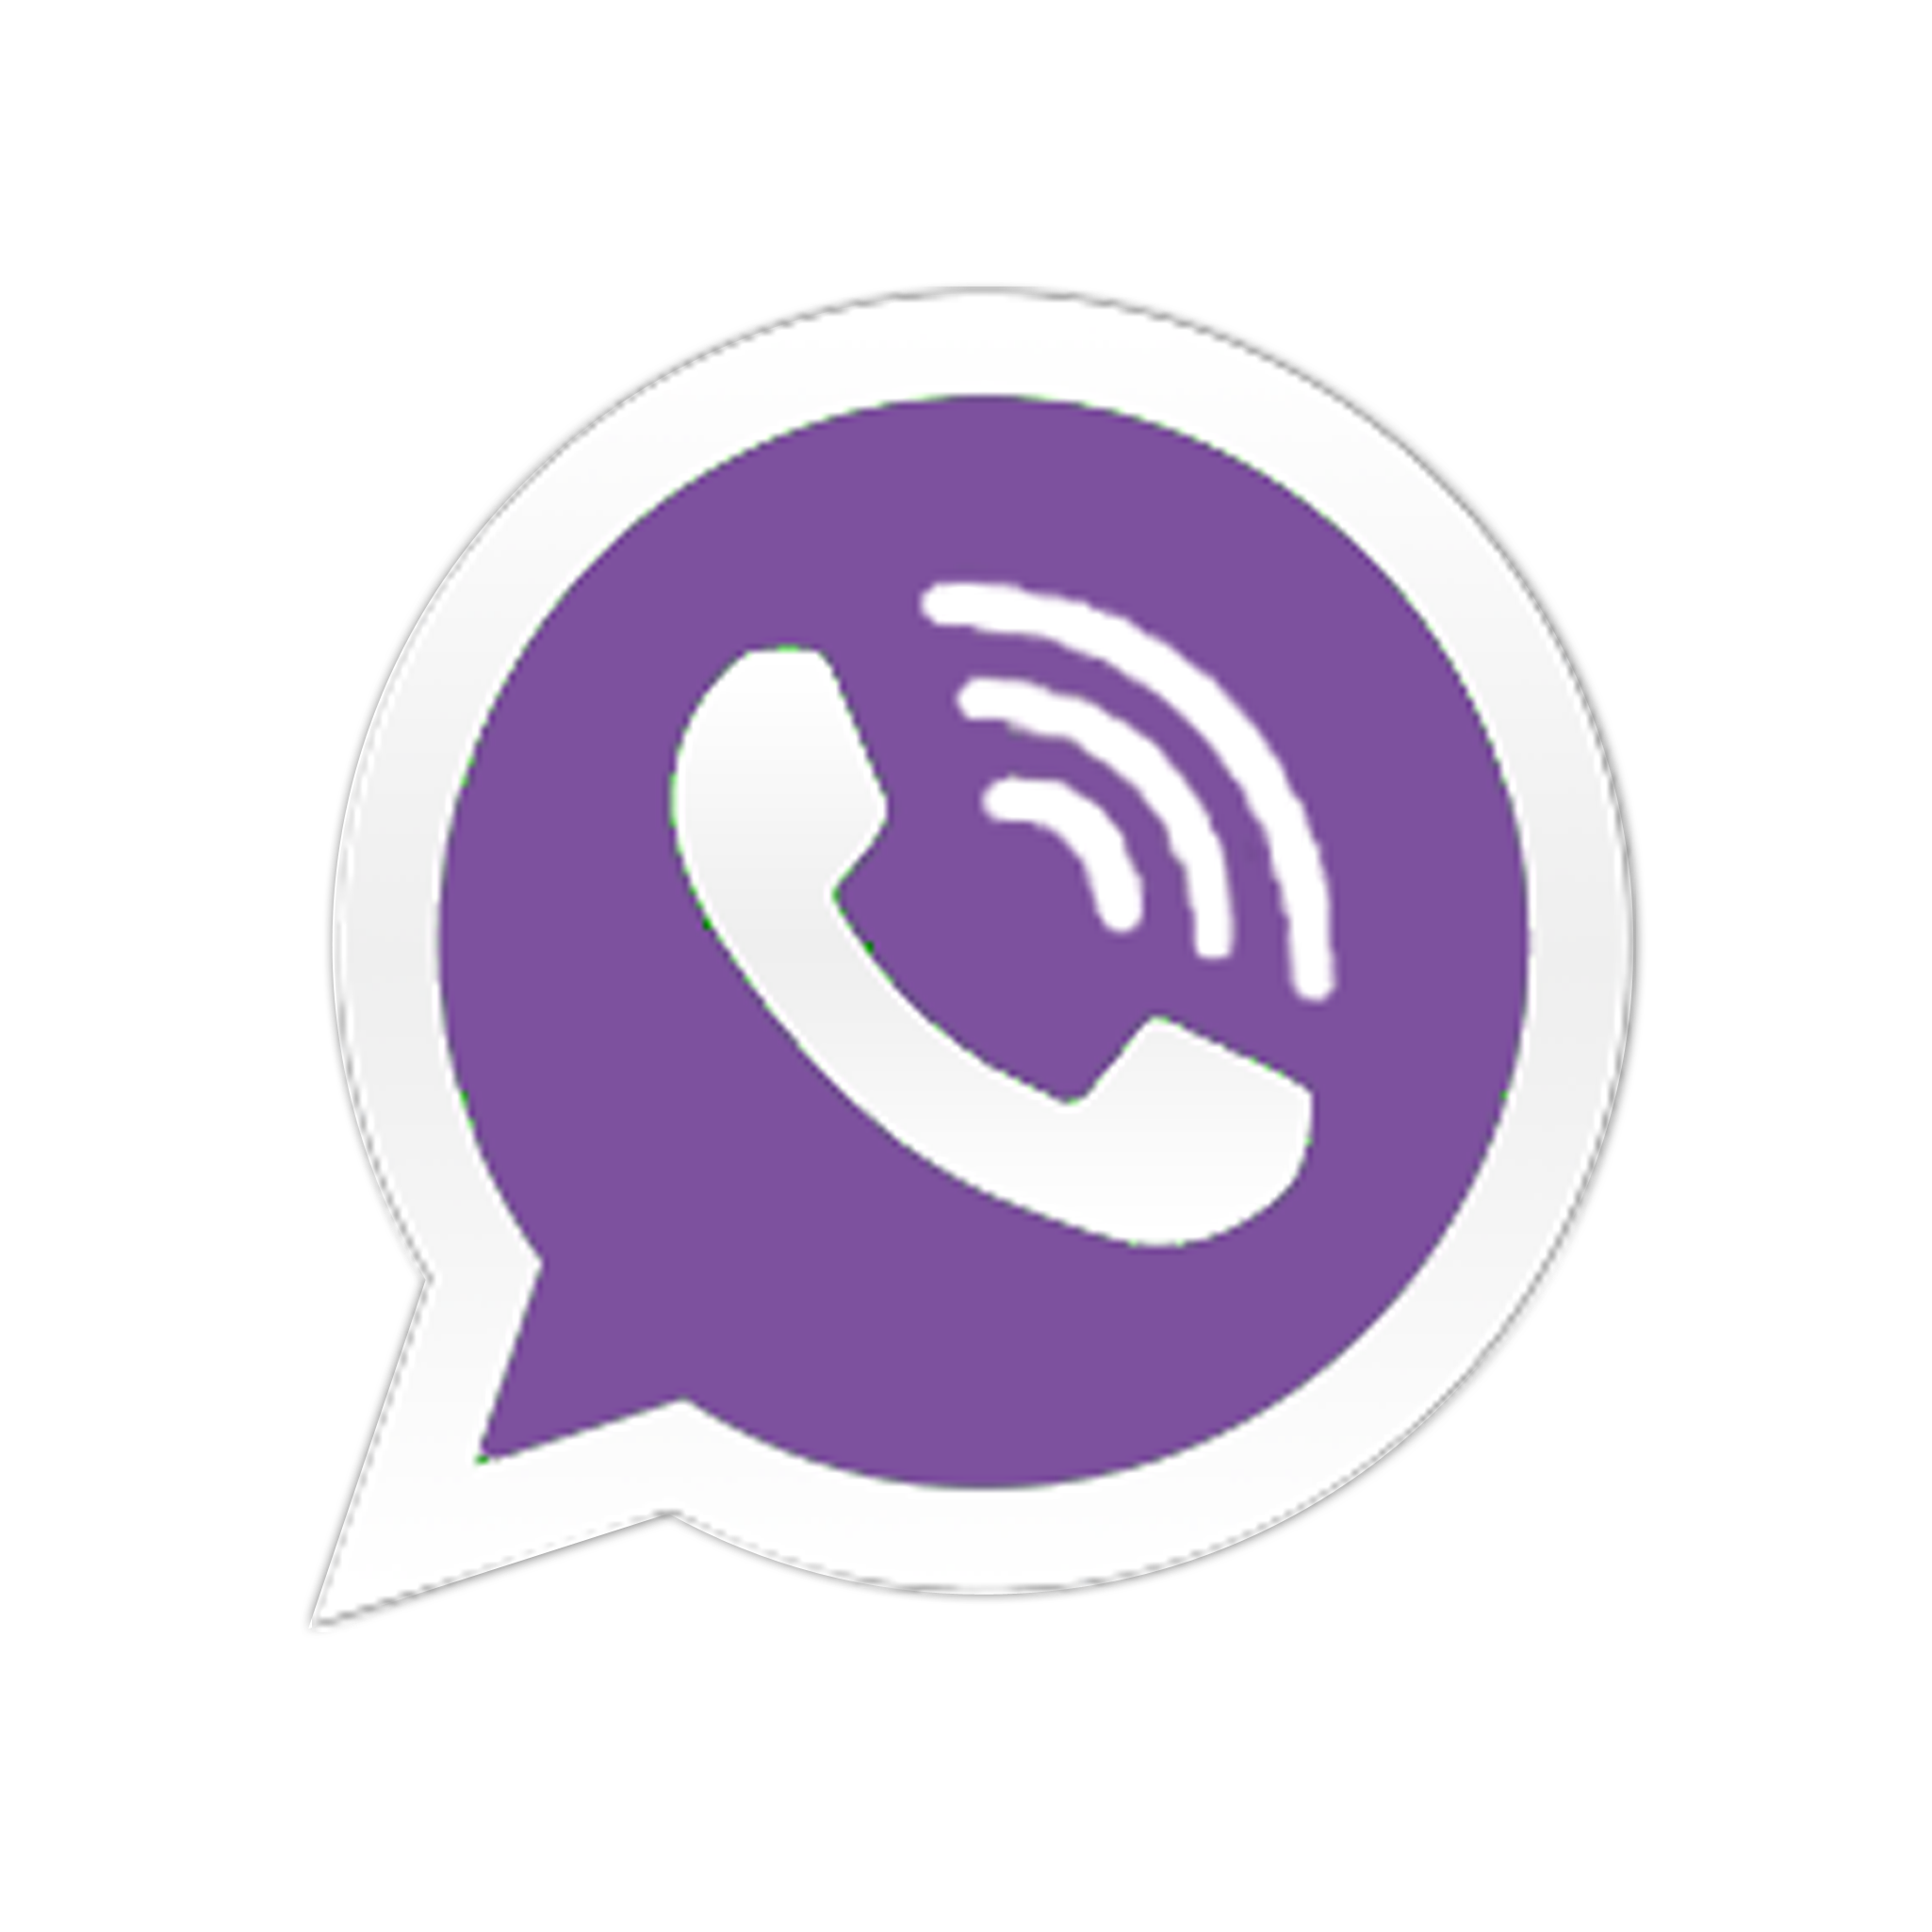 Messaging Viber Logo Purple Photo image #48160